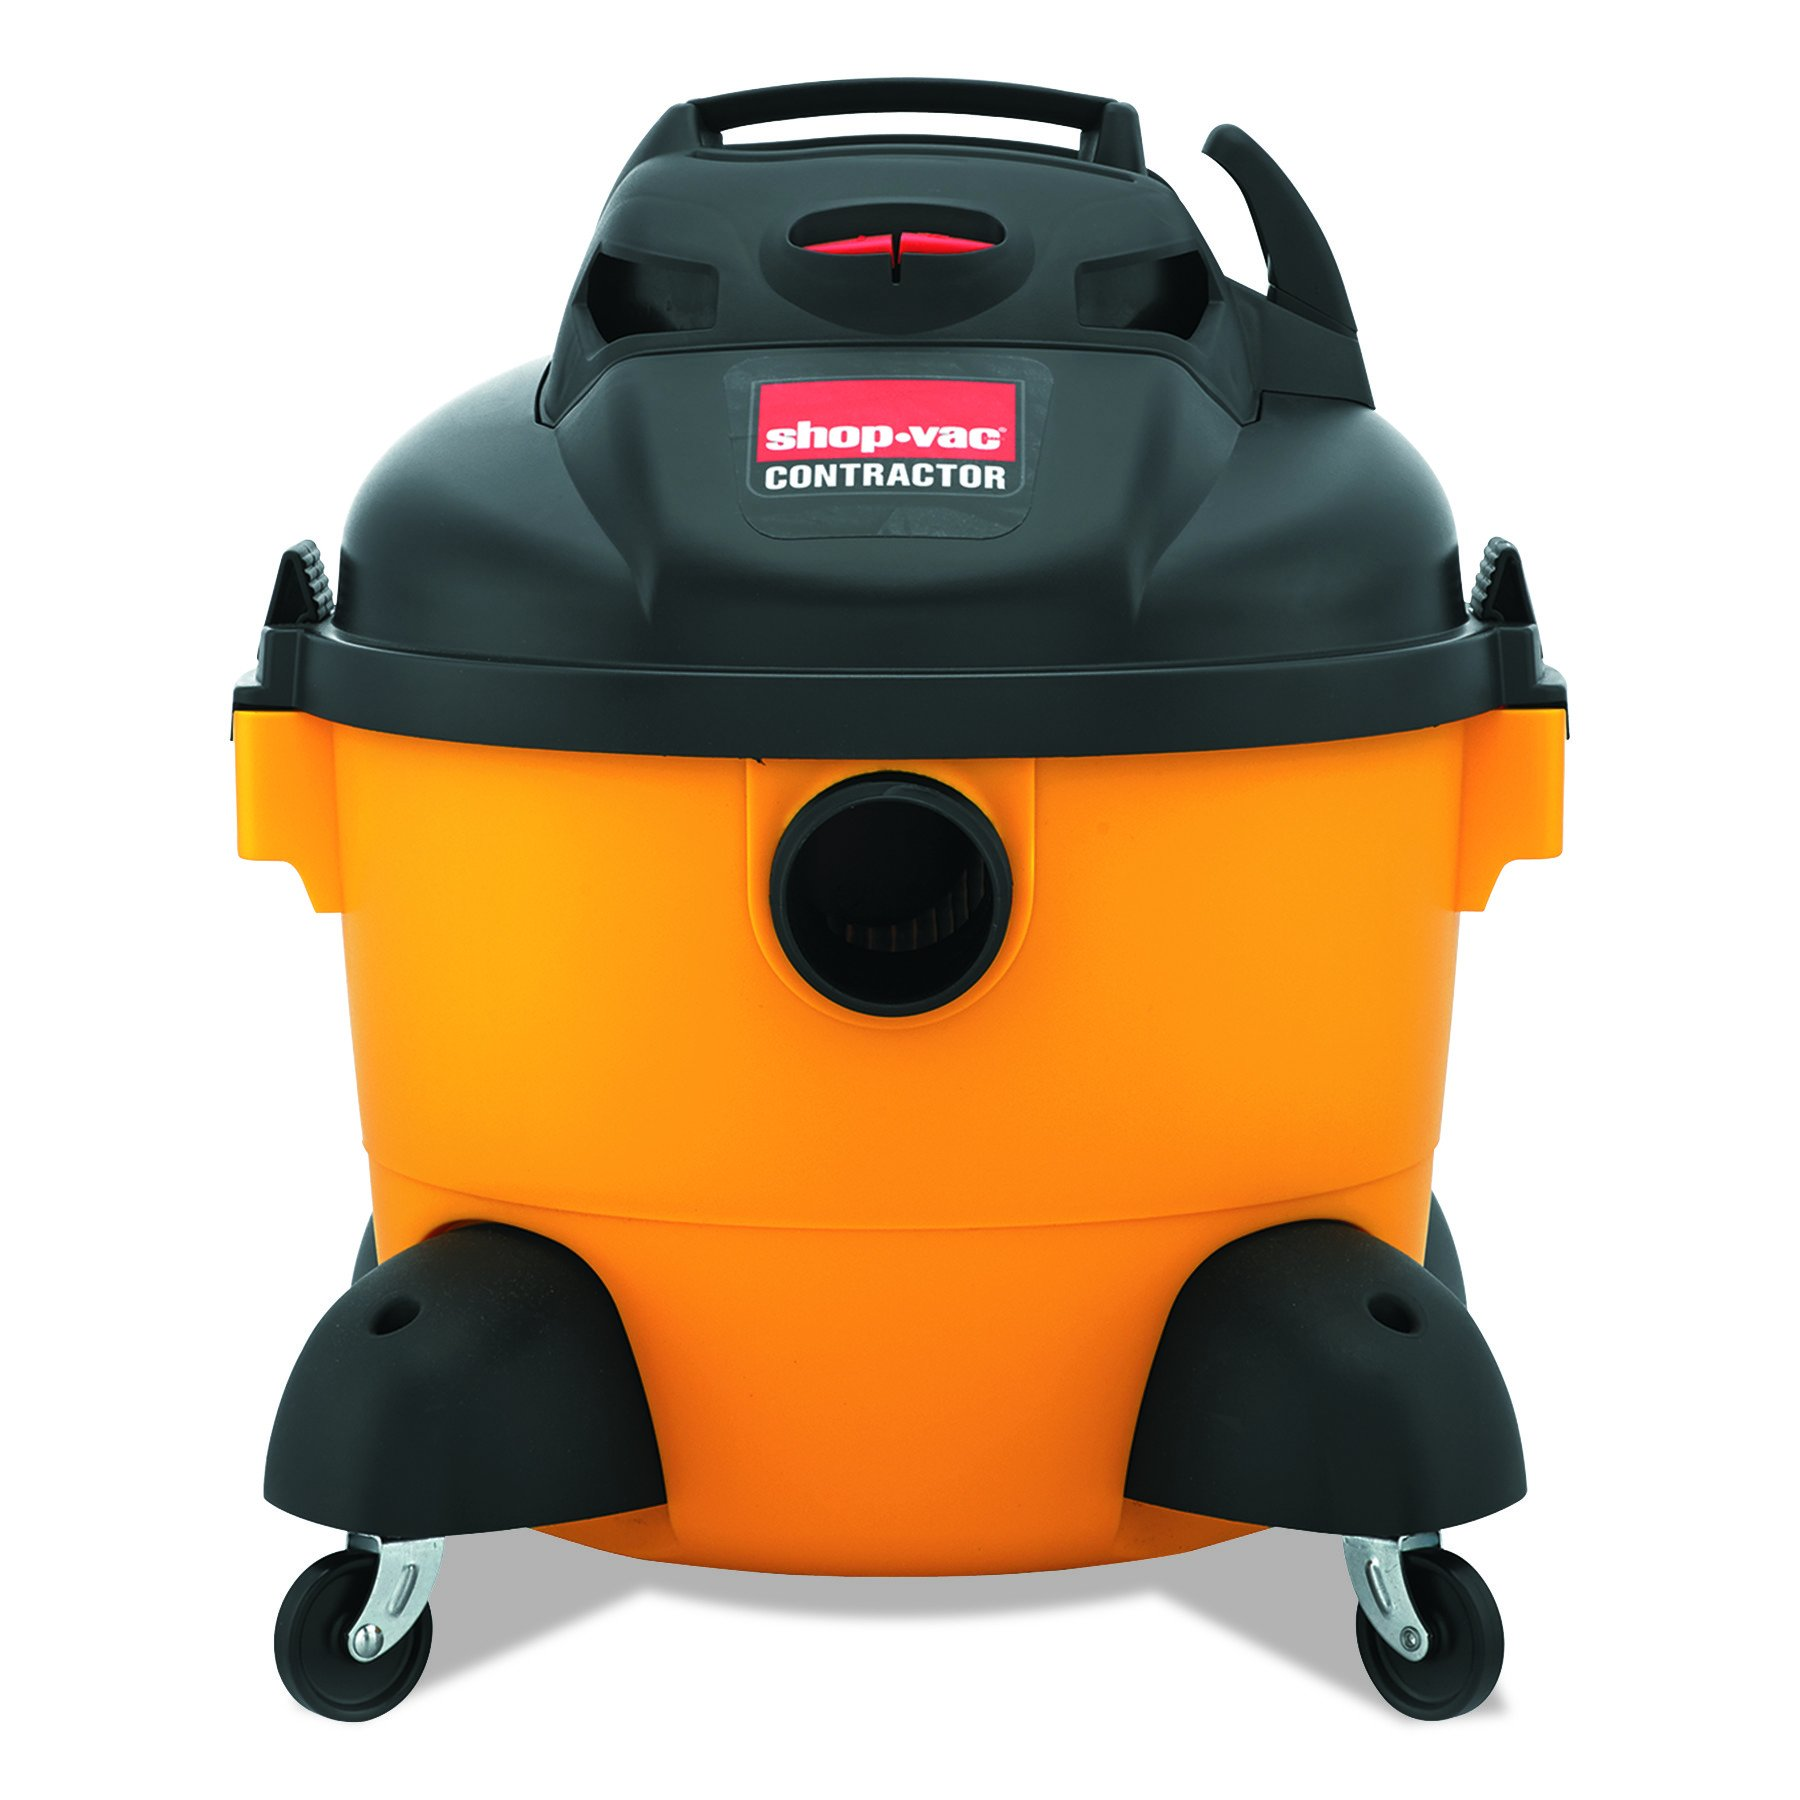 Shop-Vac 9650610 3.0-Peak Horsepower Right Stuff Wet/Dry Vacuum, 6-Gallon